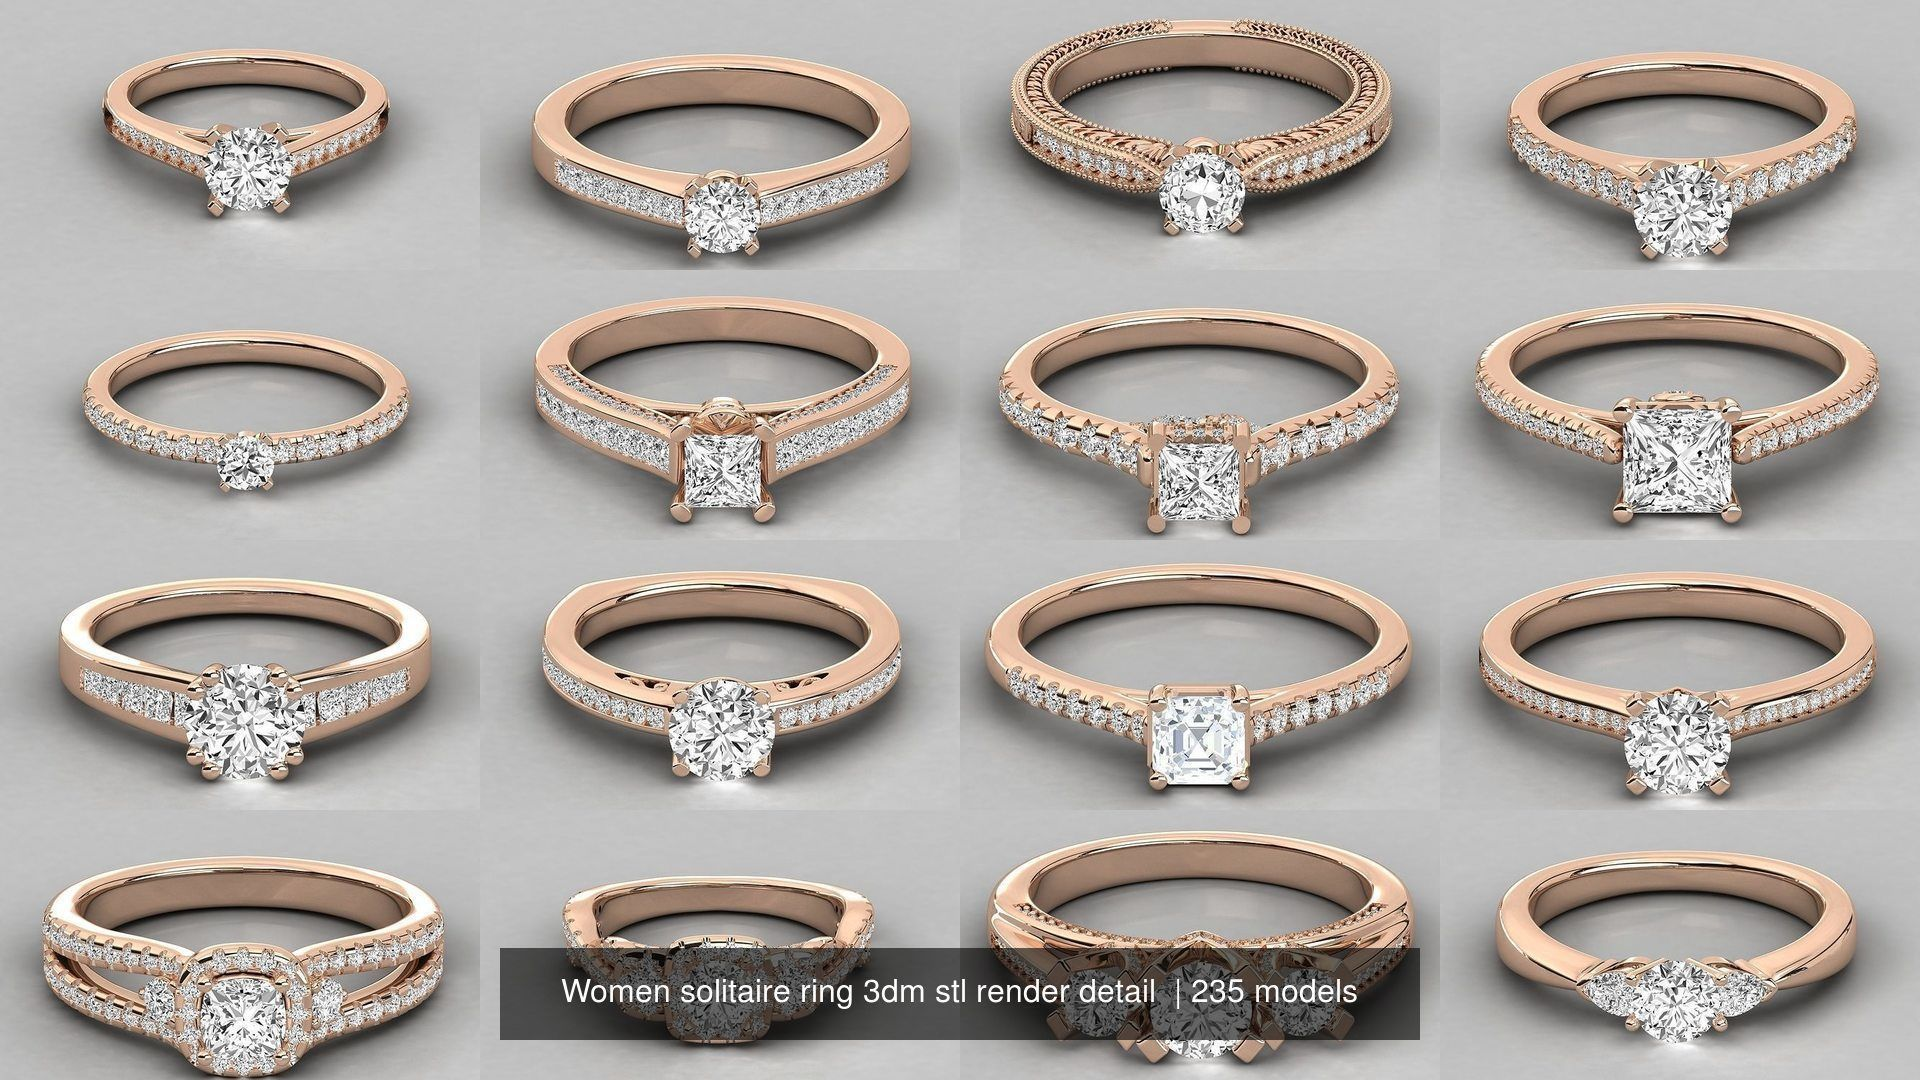 235 Women solitaire ring 3dm stl 9 render detail